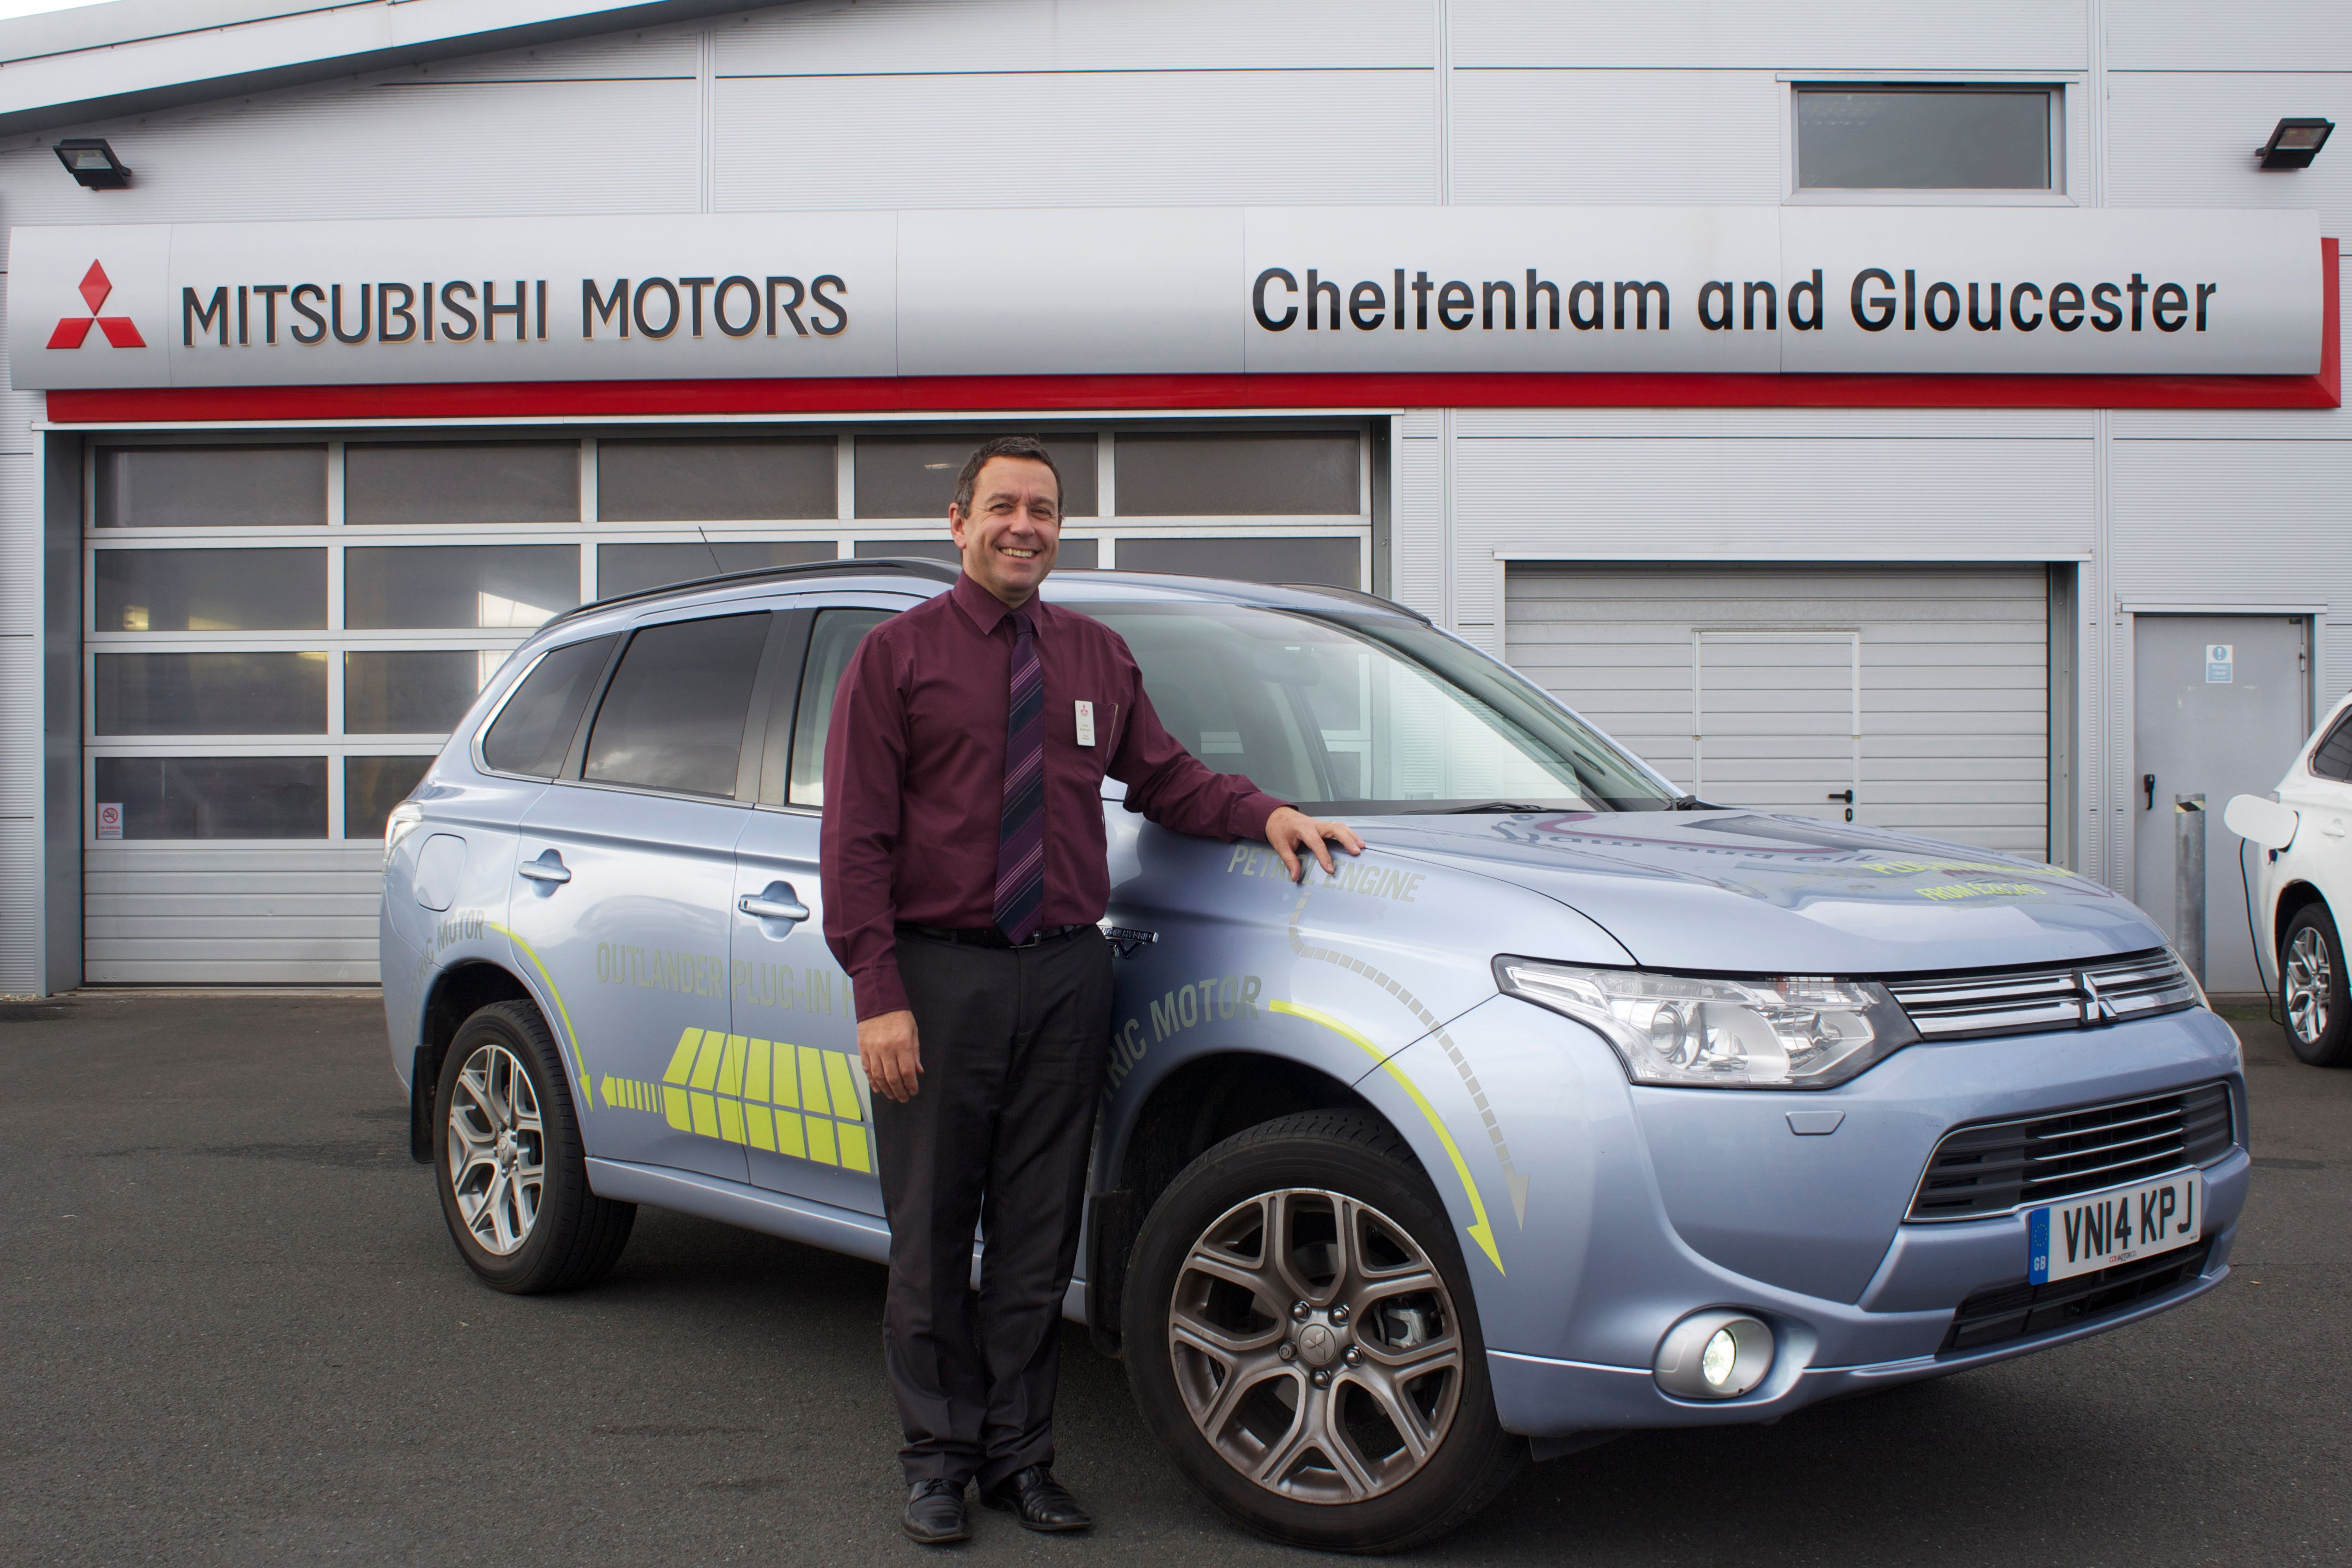 MITSUBISHI DEALERSHIP WELCOMES PLANS TO INTRODUCE MORE CHARGING POINTS IN CHELTENHAM AND GLOUCESTER